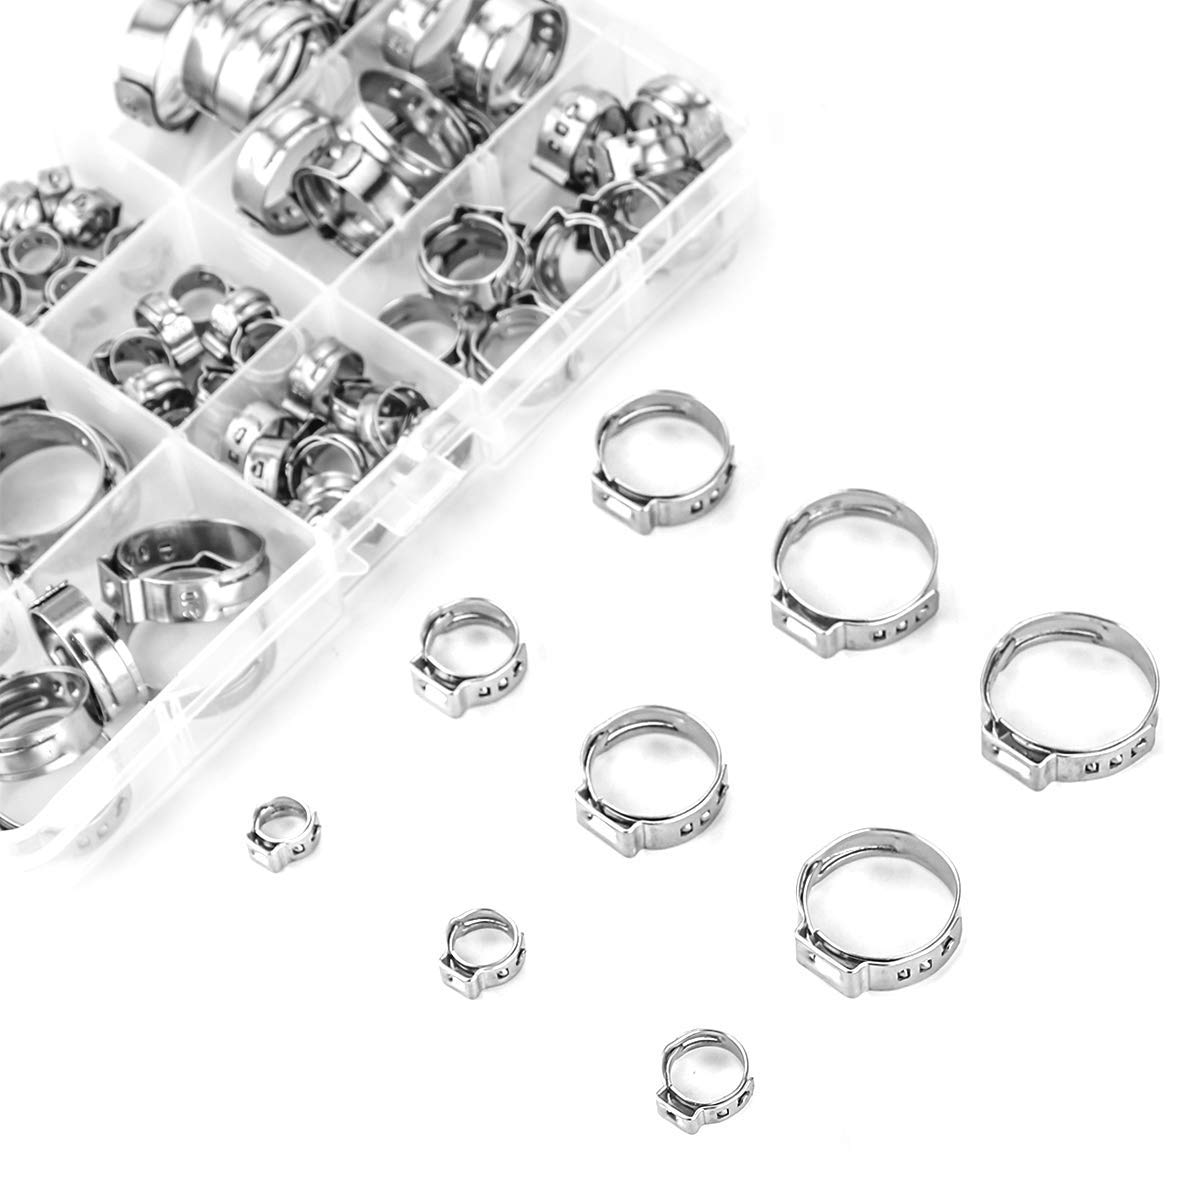 Closed Clamp ID Range 3.1 mm - 4.1 mm Pack of 100 Double Ear Open Oetiker 10100000 Zinc-Plated Steel Hose Clamp